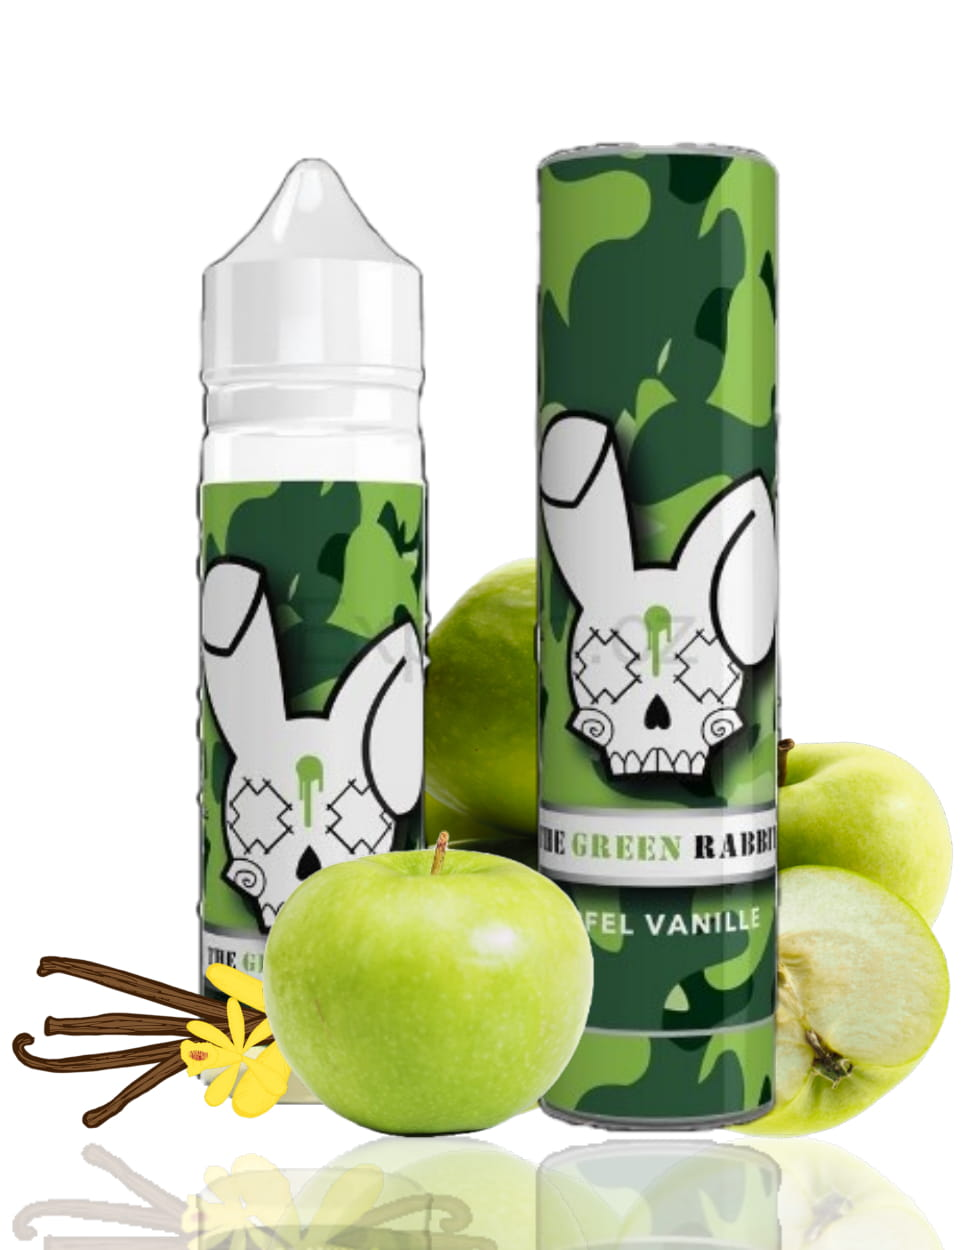 10 ml WSY - The Green Rabbit (Shake & Vape)